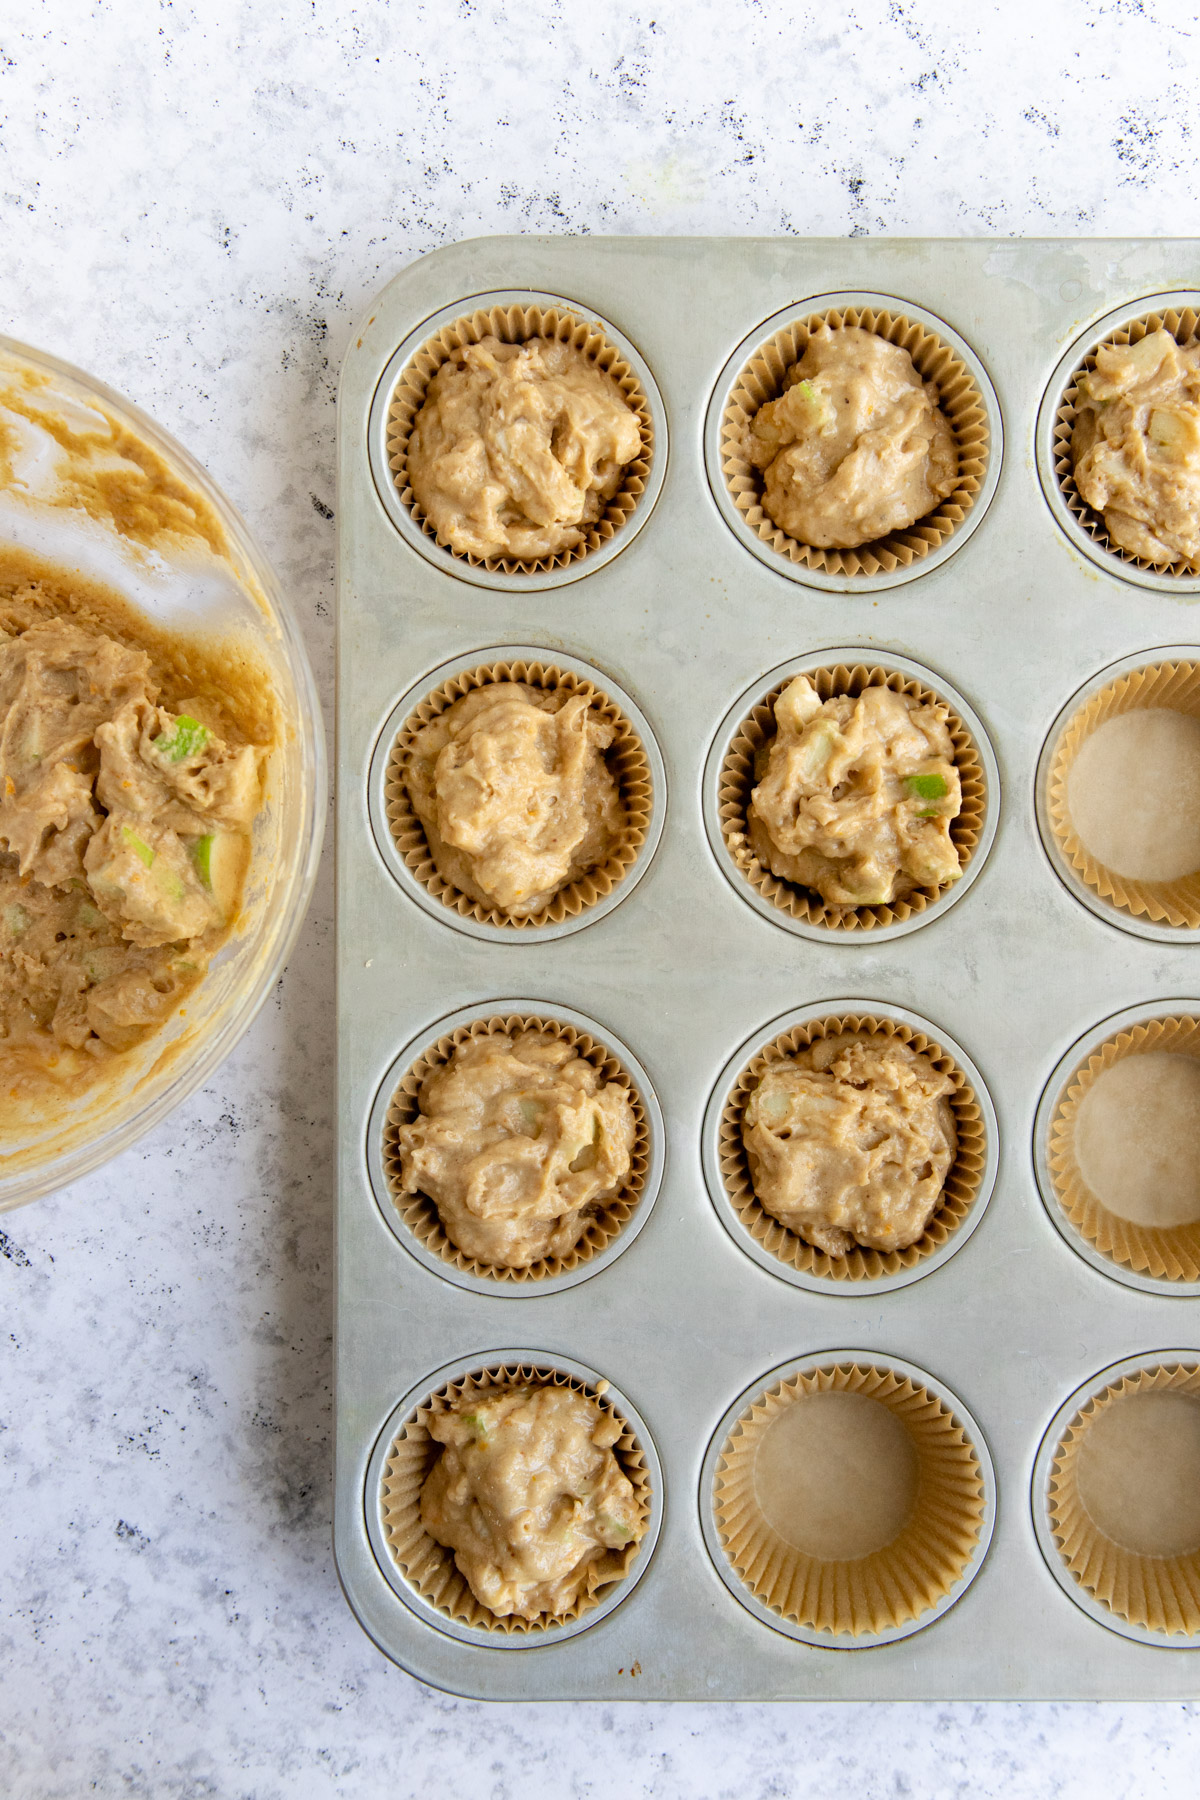 Add the Batter to the Muffin Cups